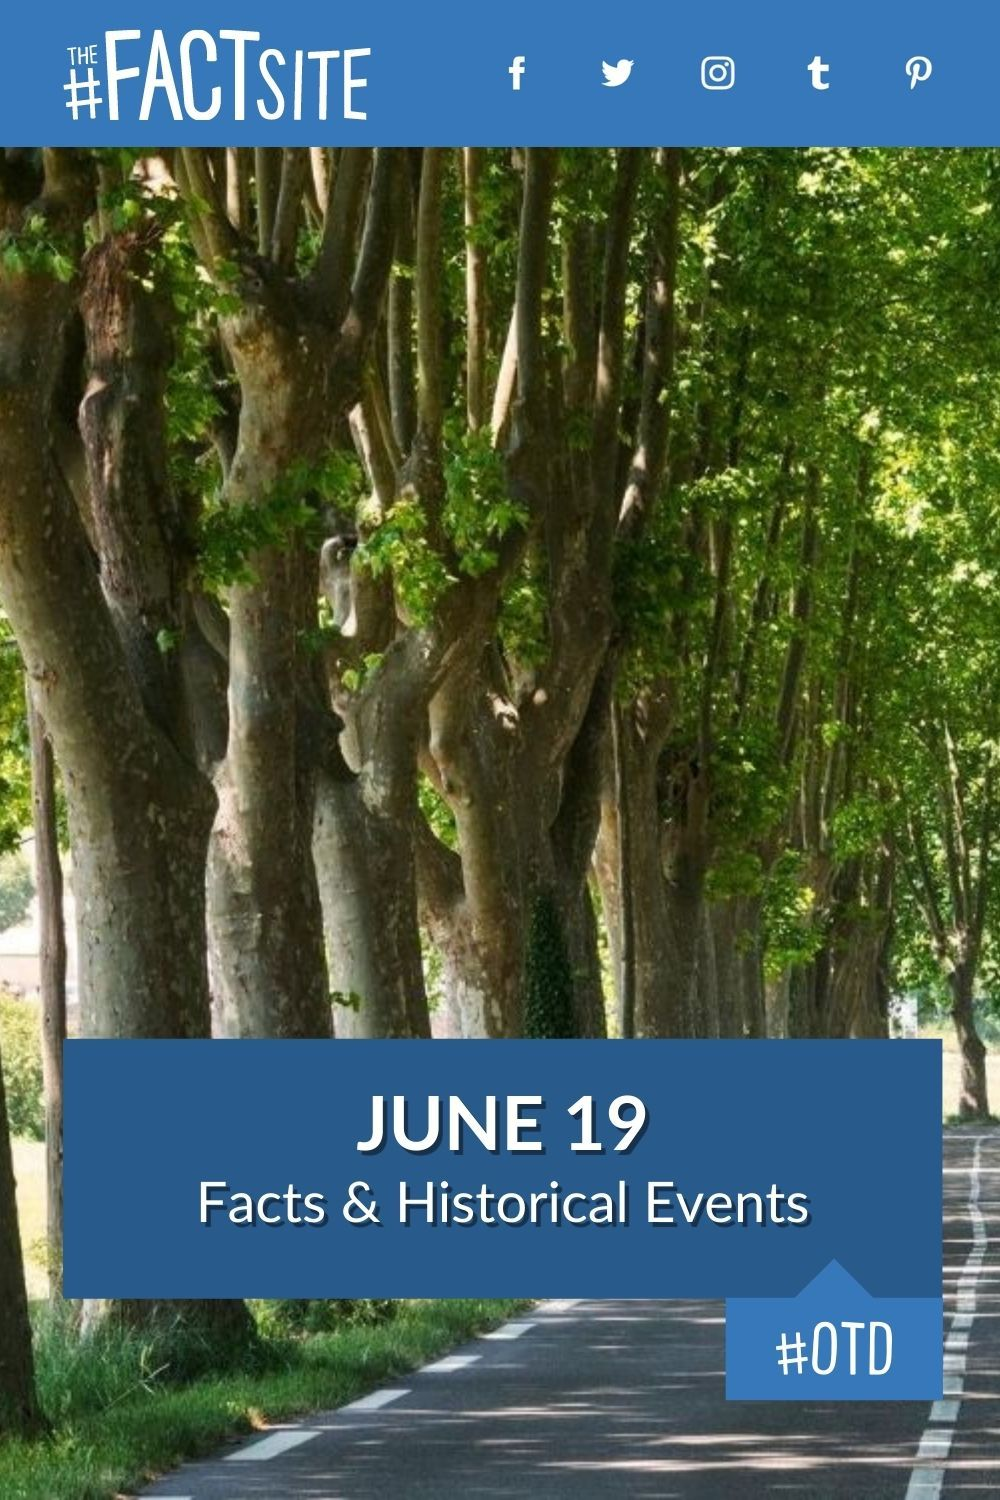 Facts & Historic Events That Happened on June 19